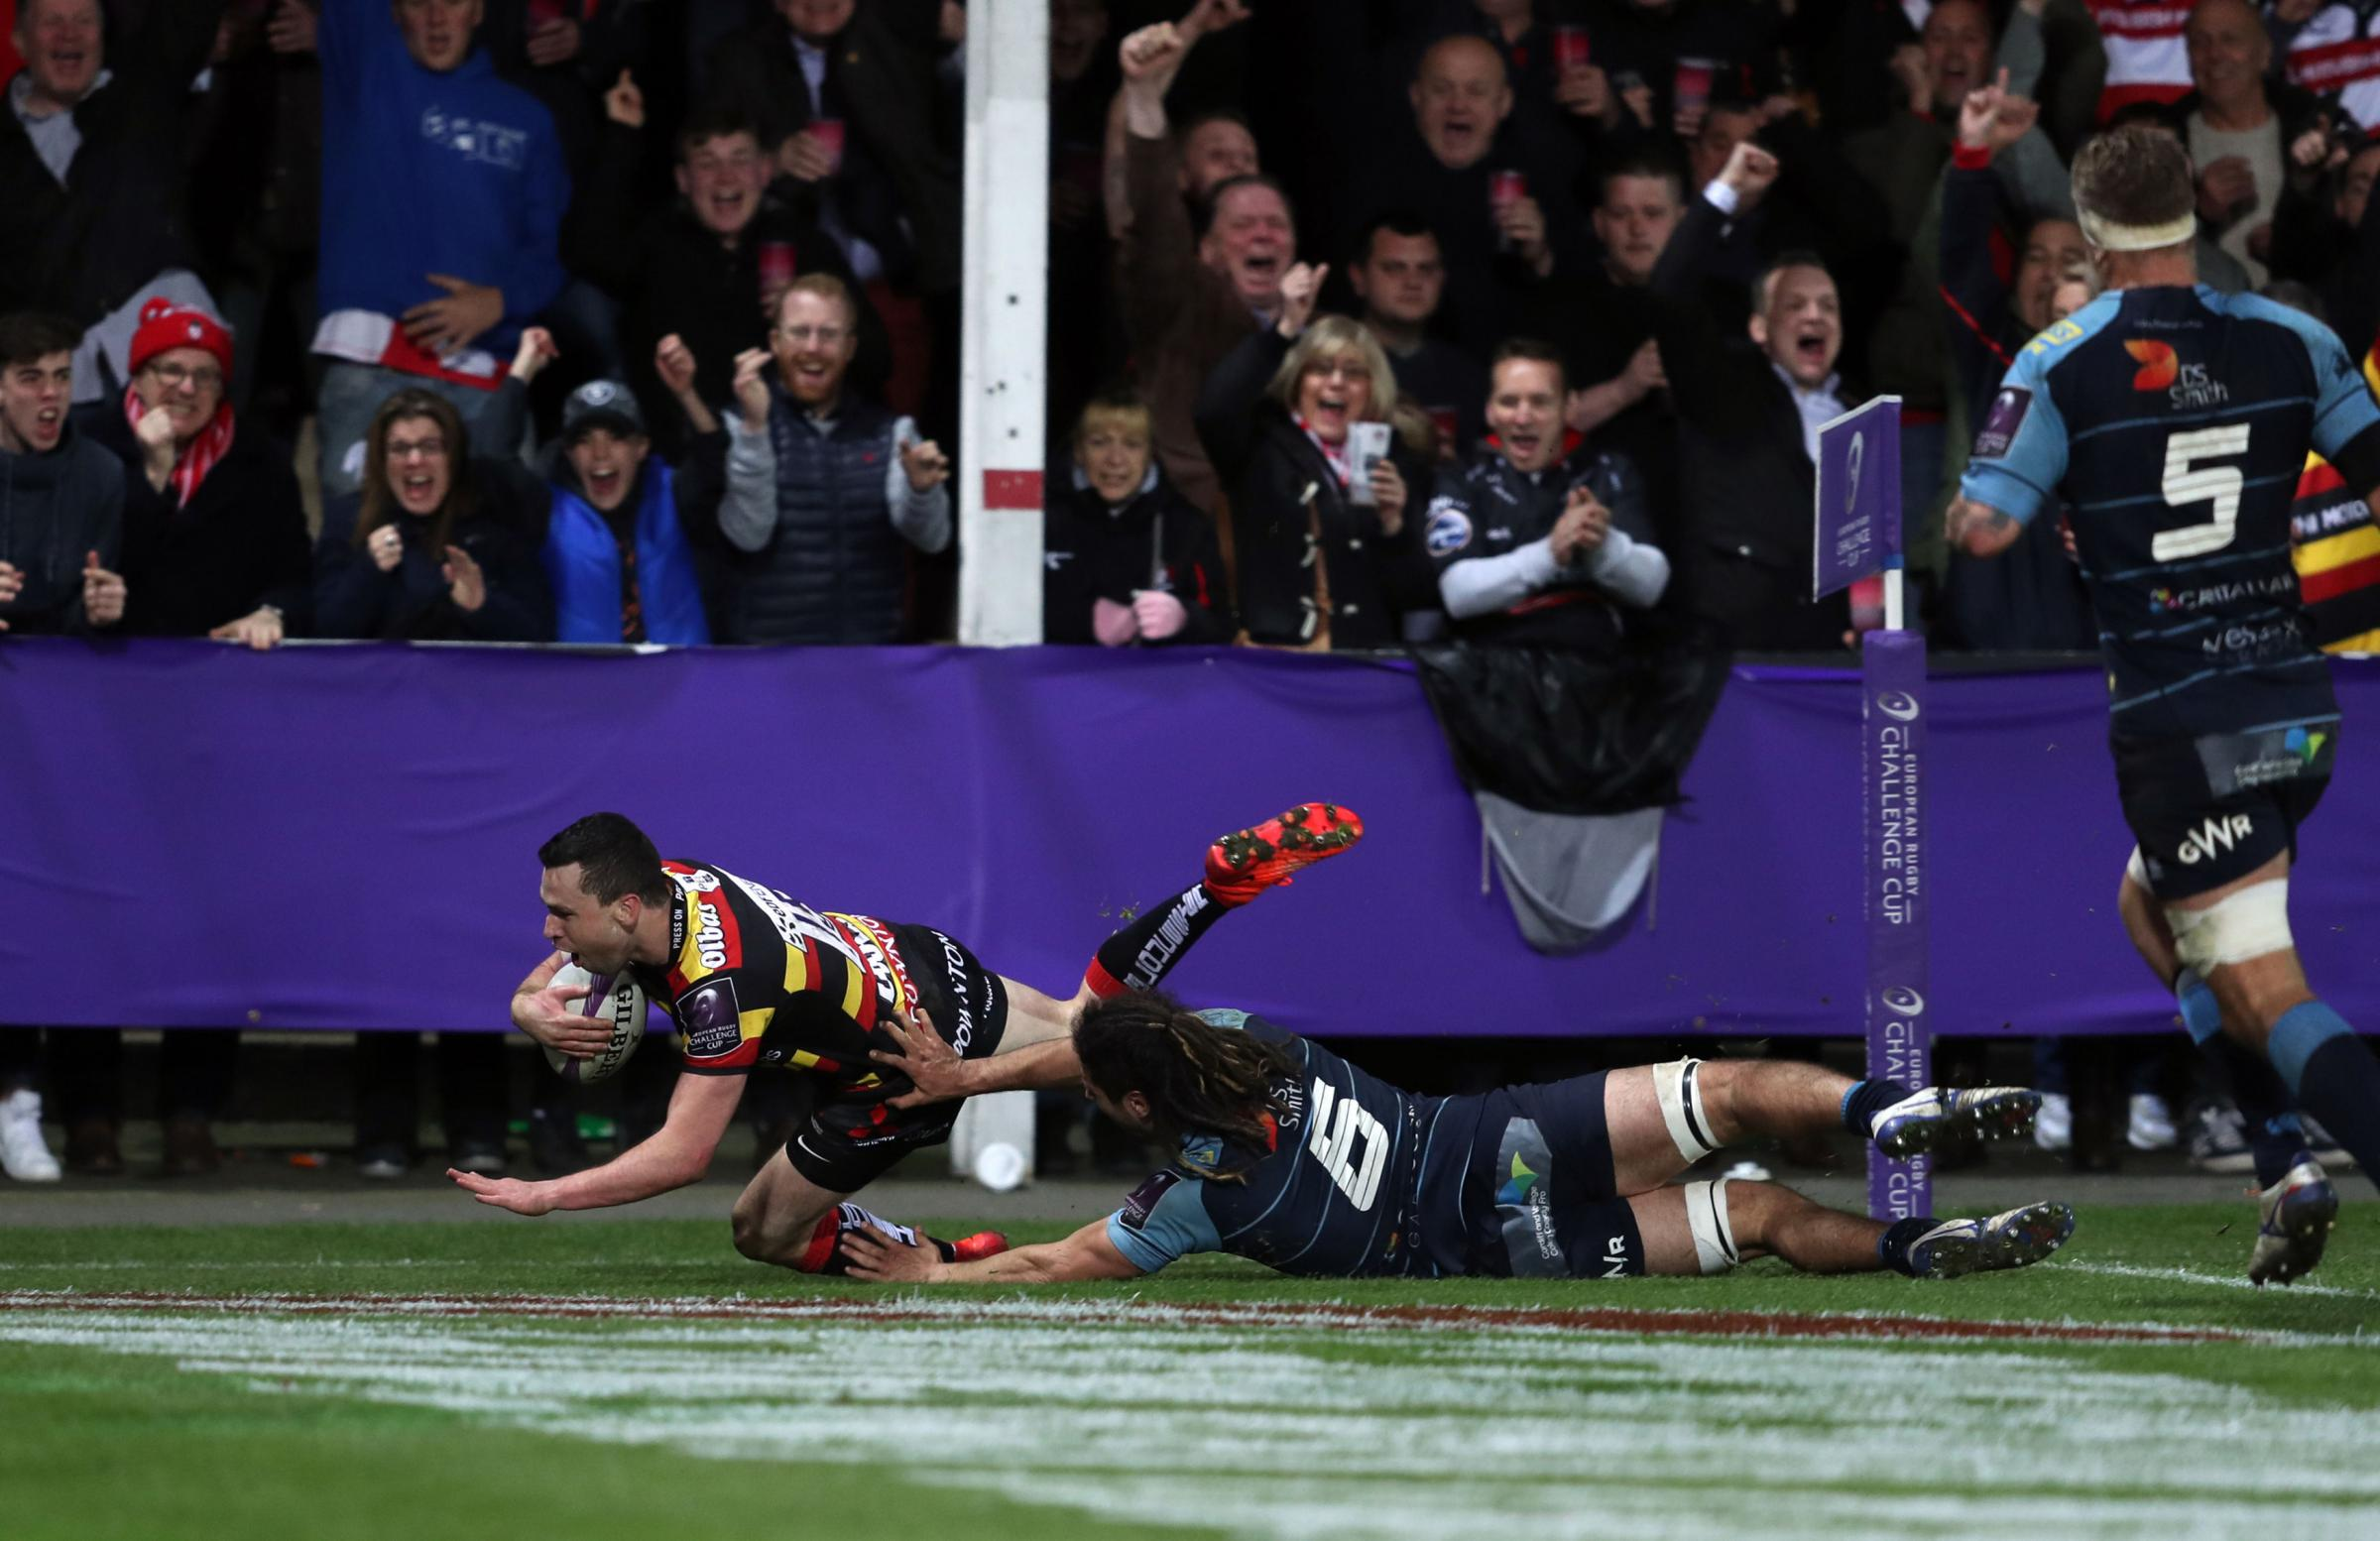 Tom Marshall scores against Cardiff Blues